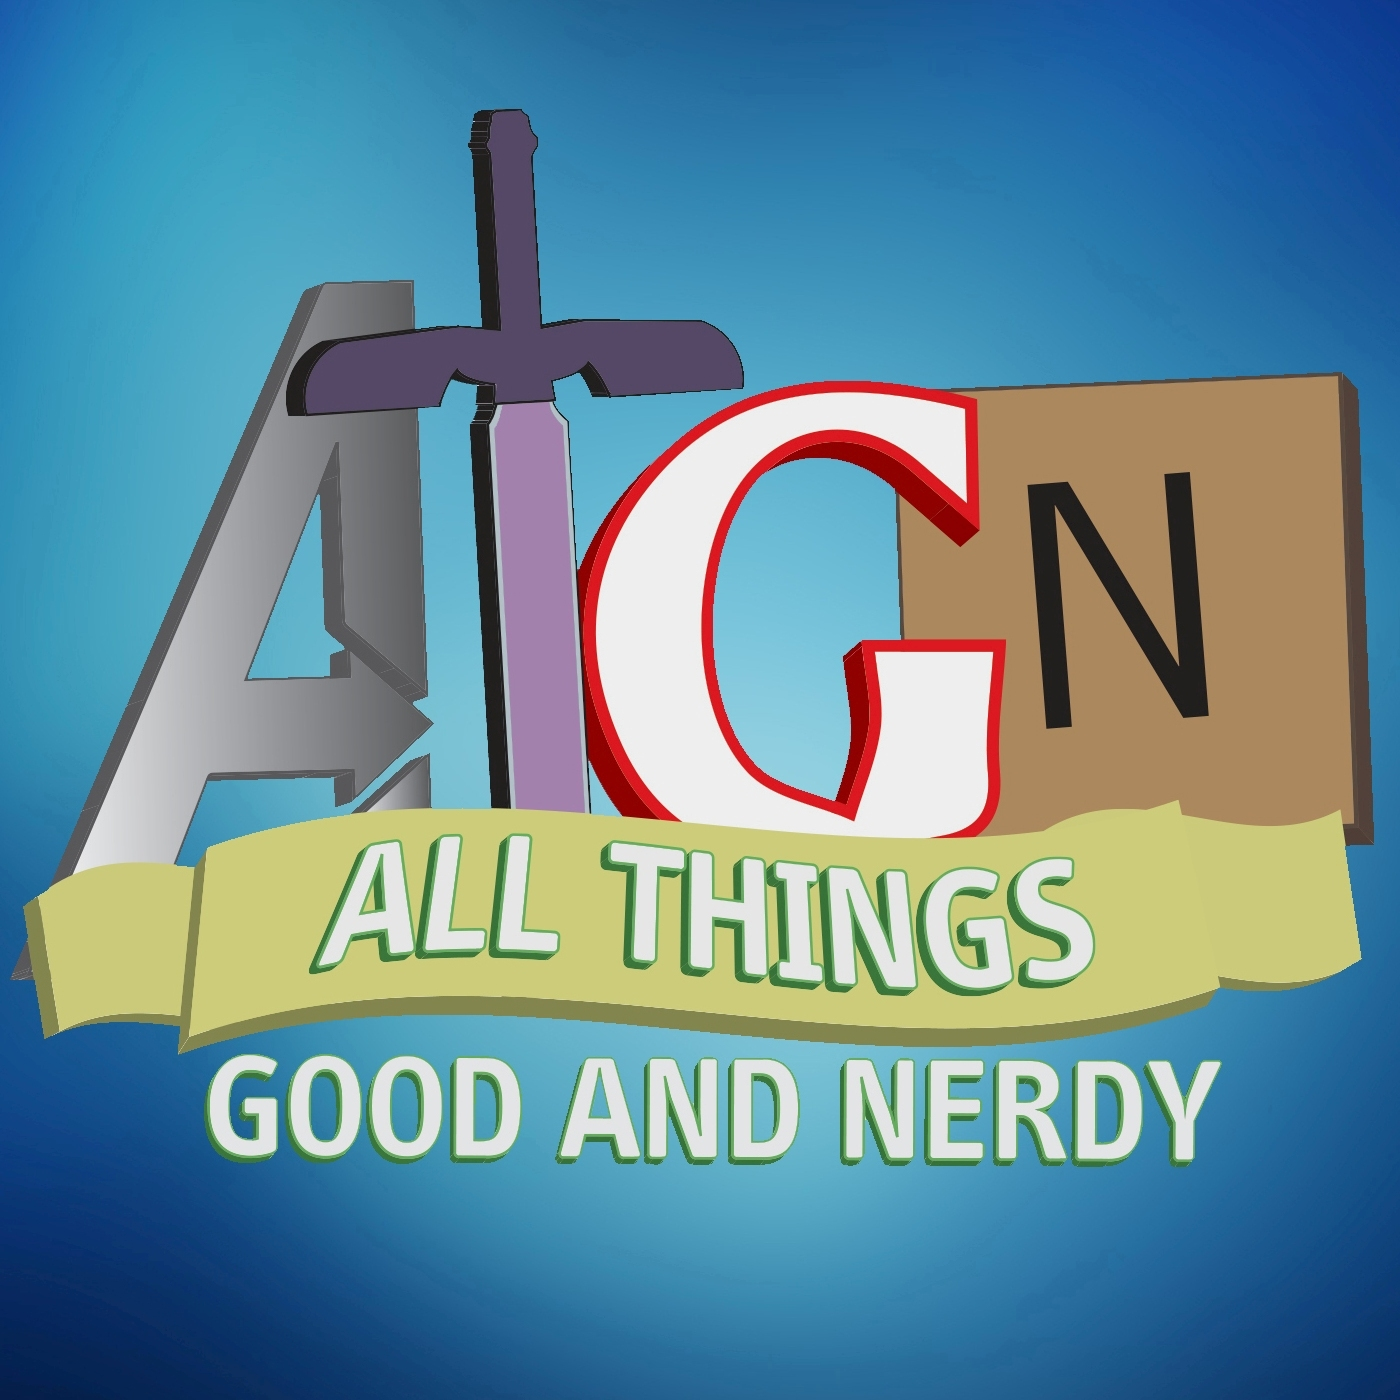 All Things Good And Nerdy